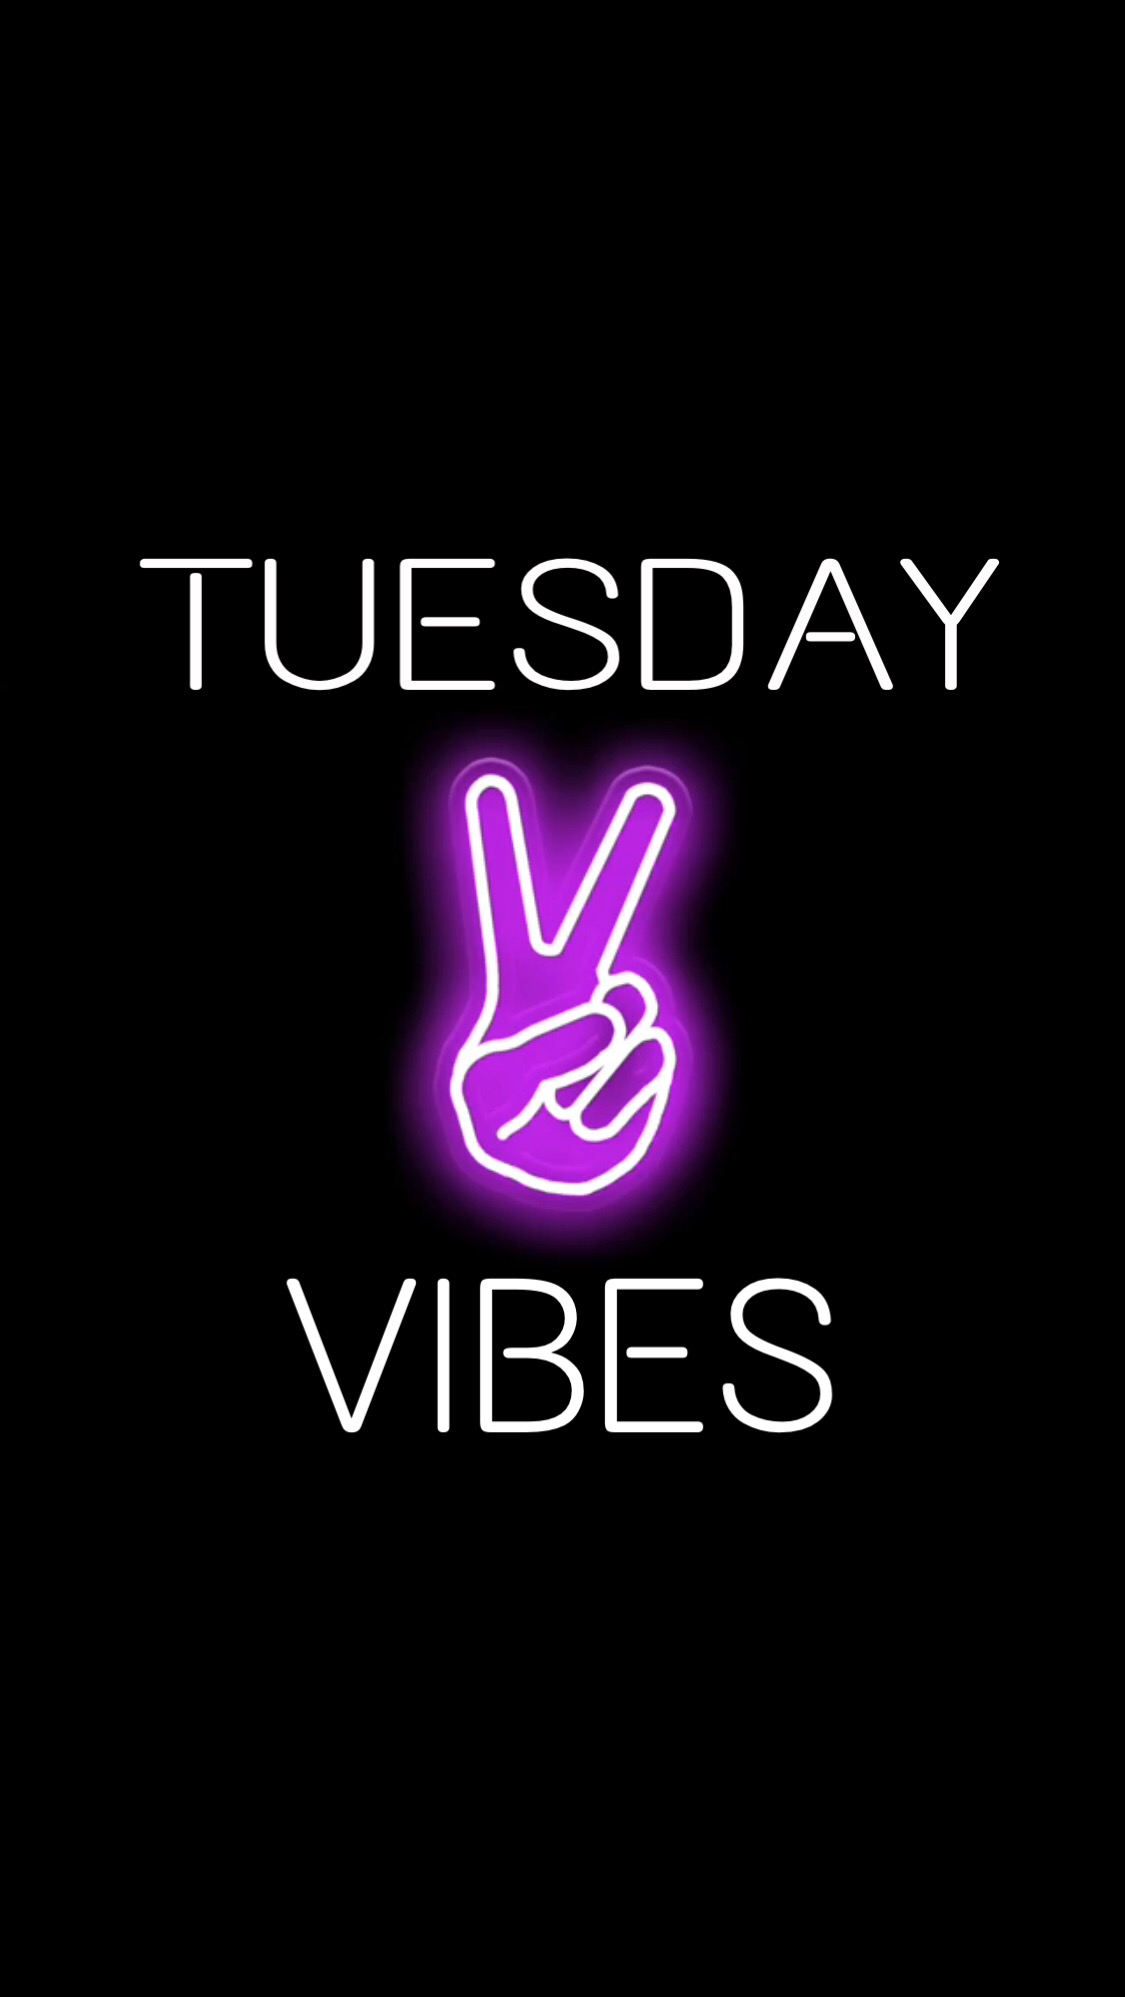 Ayyy Tuesday Vibes Wallpaper Image By Dolan Twins💙